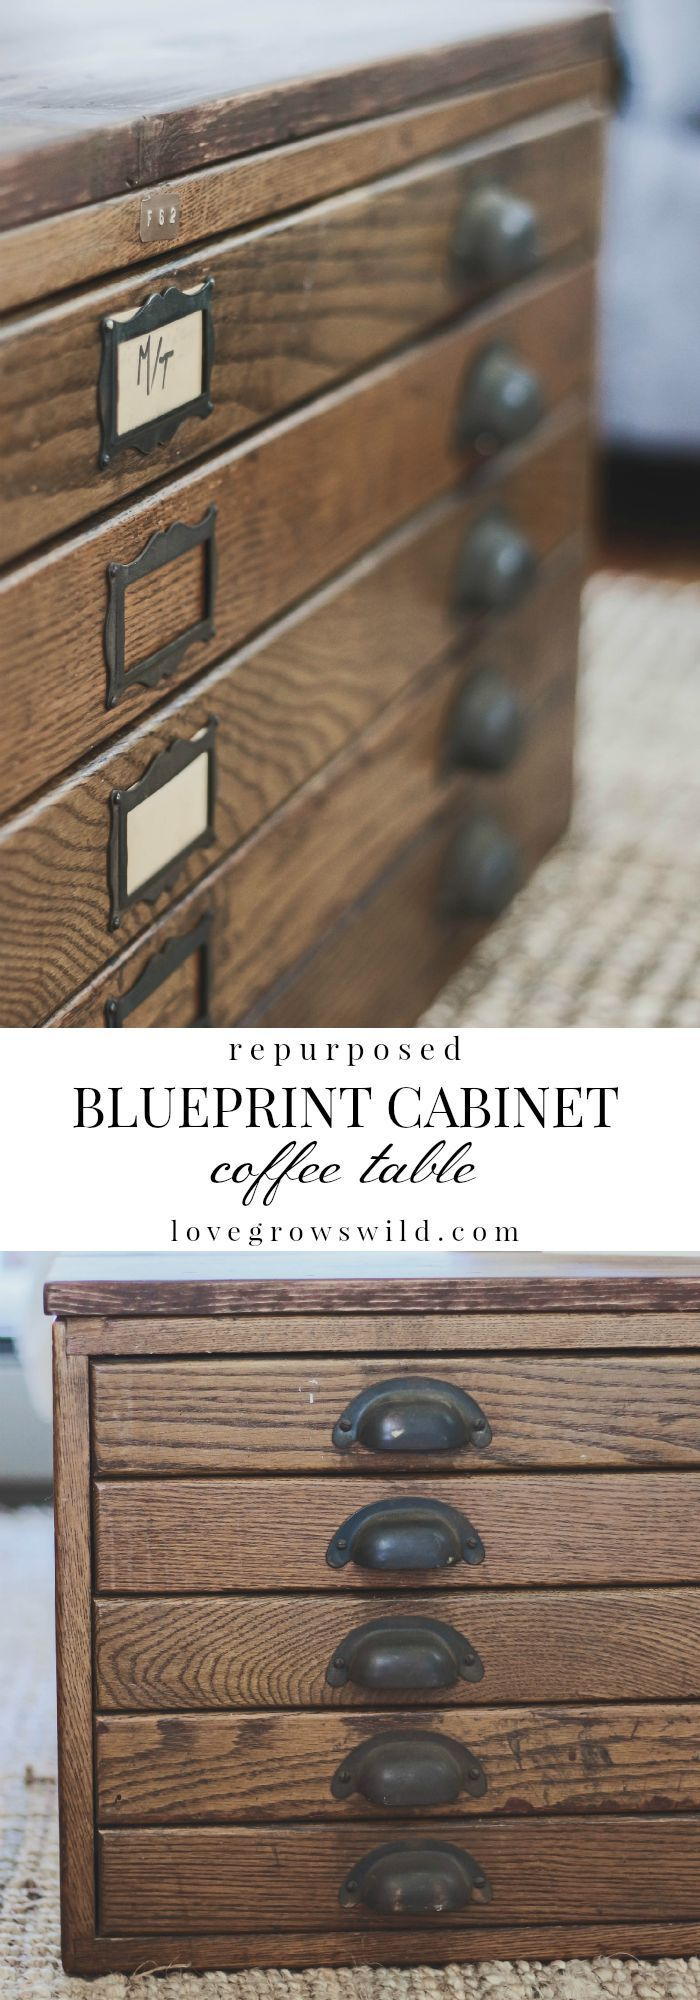 The 25 best blueprint table ideas on pinterest glass coffee repurposed blueprint cabinet coffee table malvernweather Image collections